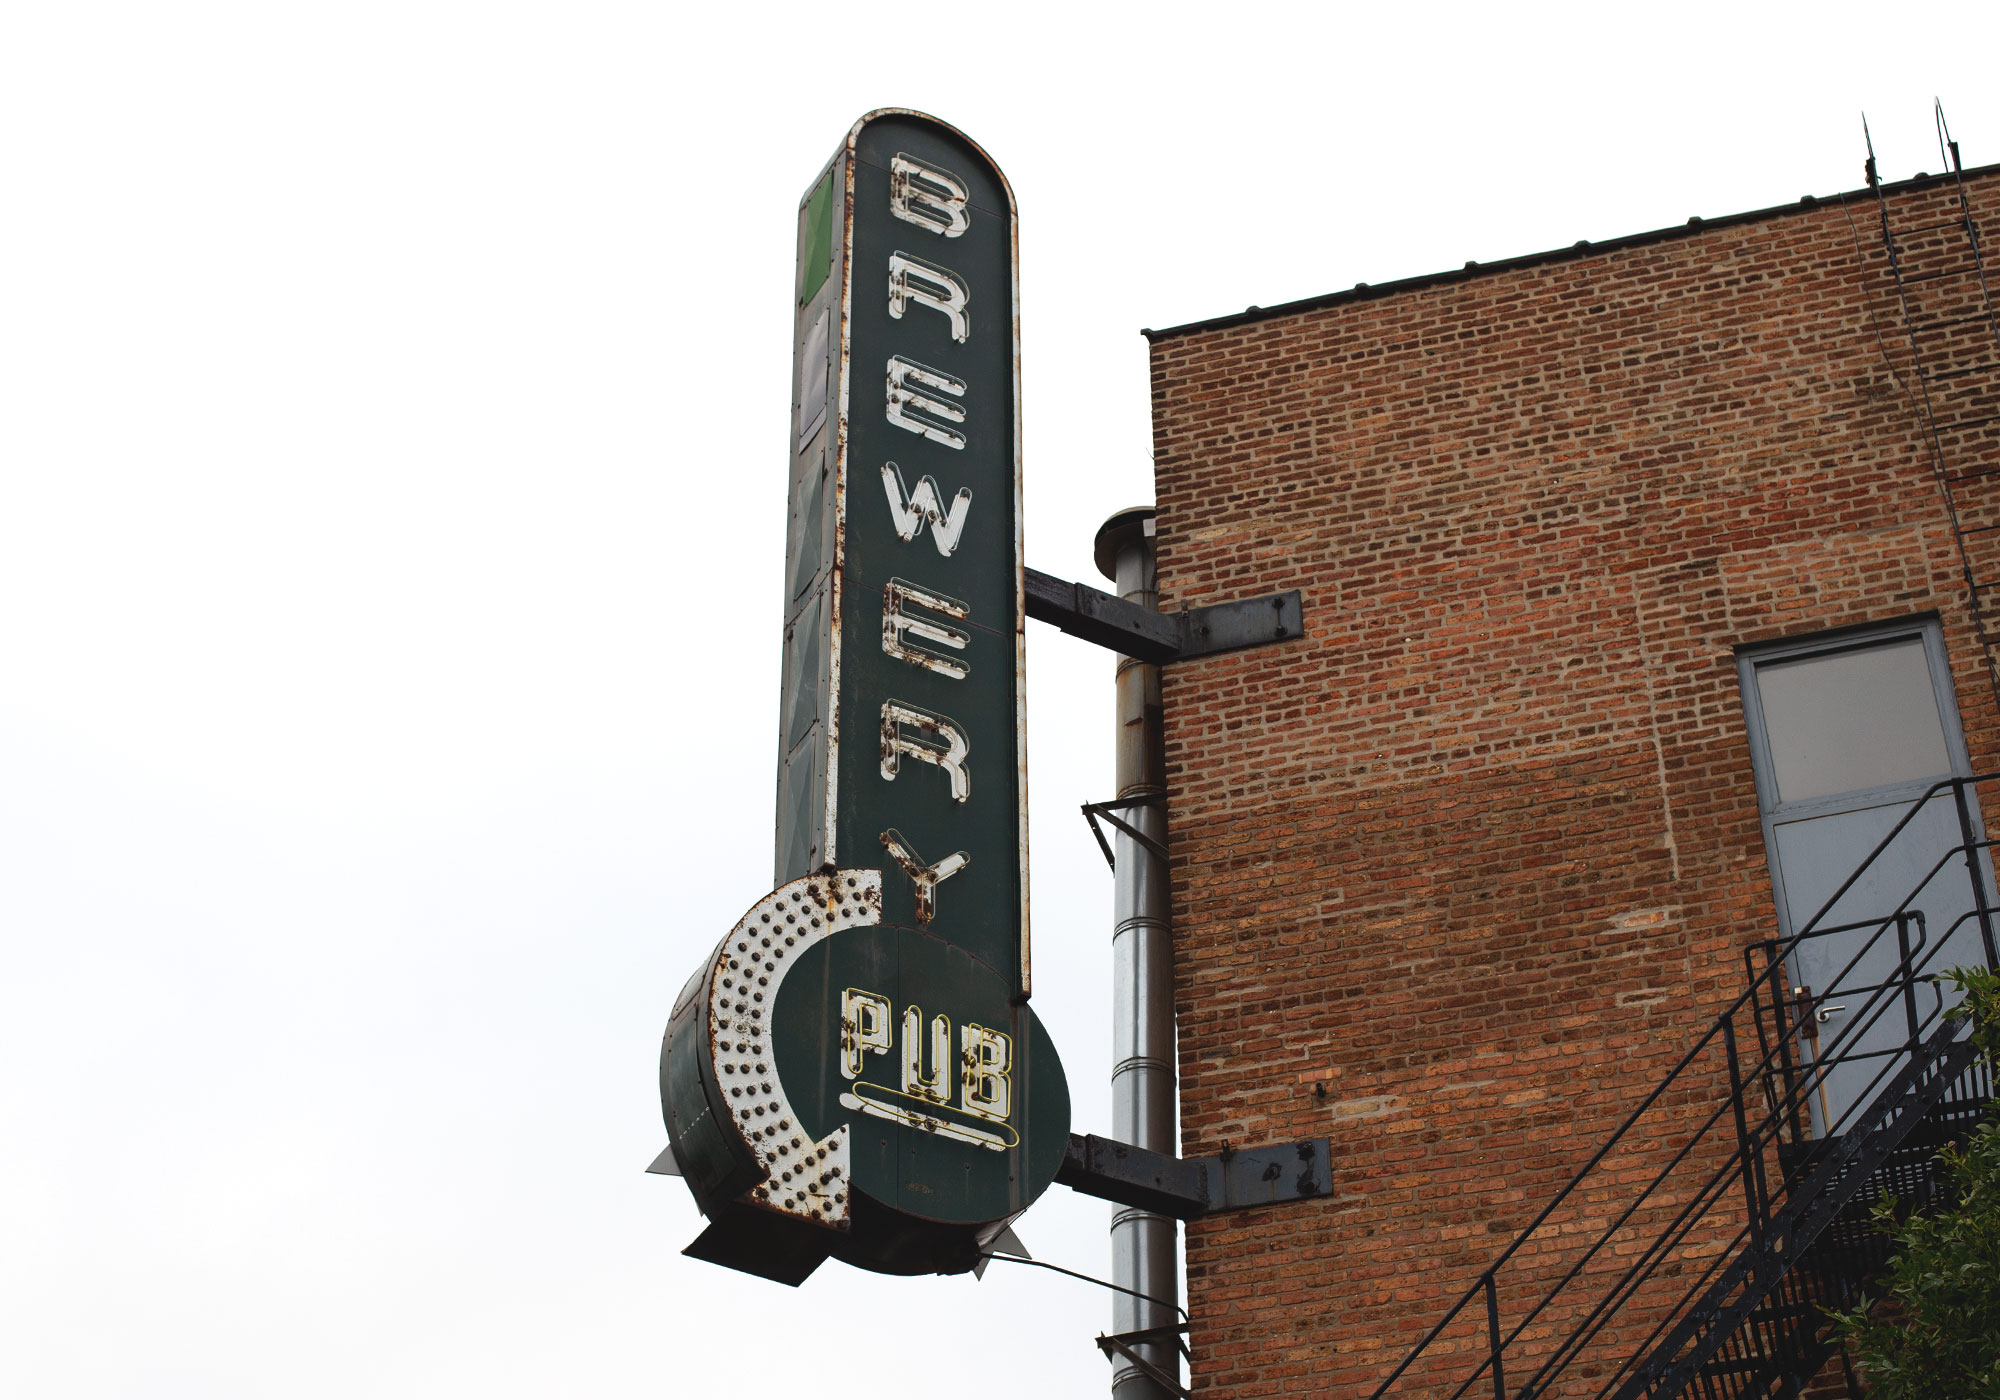 Goose Island's original 'Brewhouse' on Clybourn Ave.–the venue for this year's tasting.